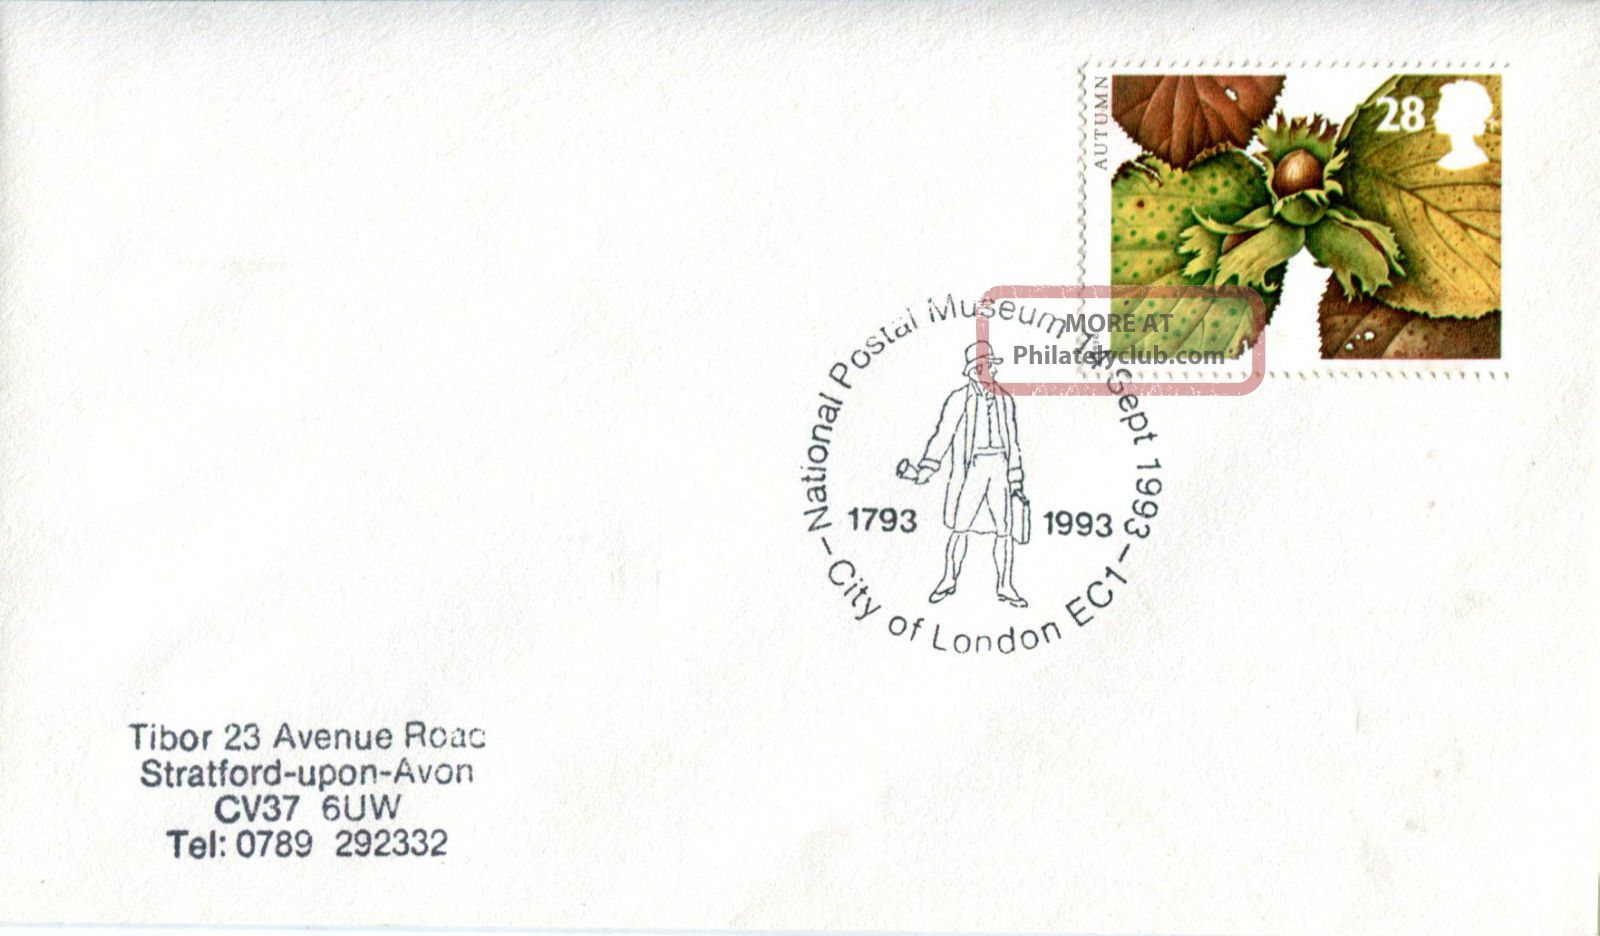 14 September 1993 Autumn First Day Cover National Postal Museum Shs Topical Stamps photo